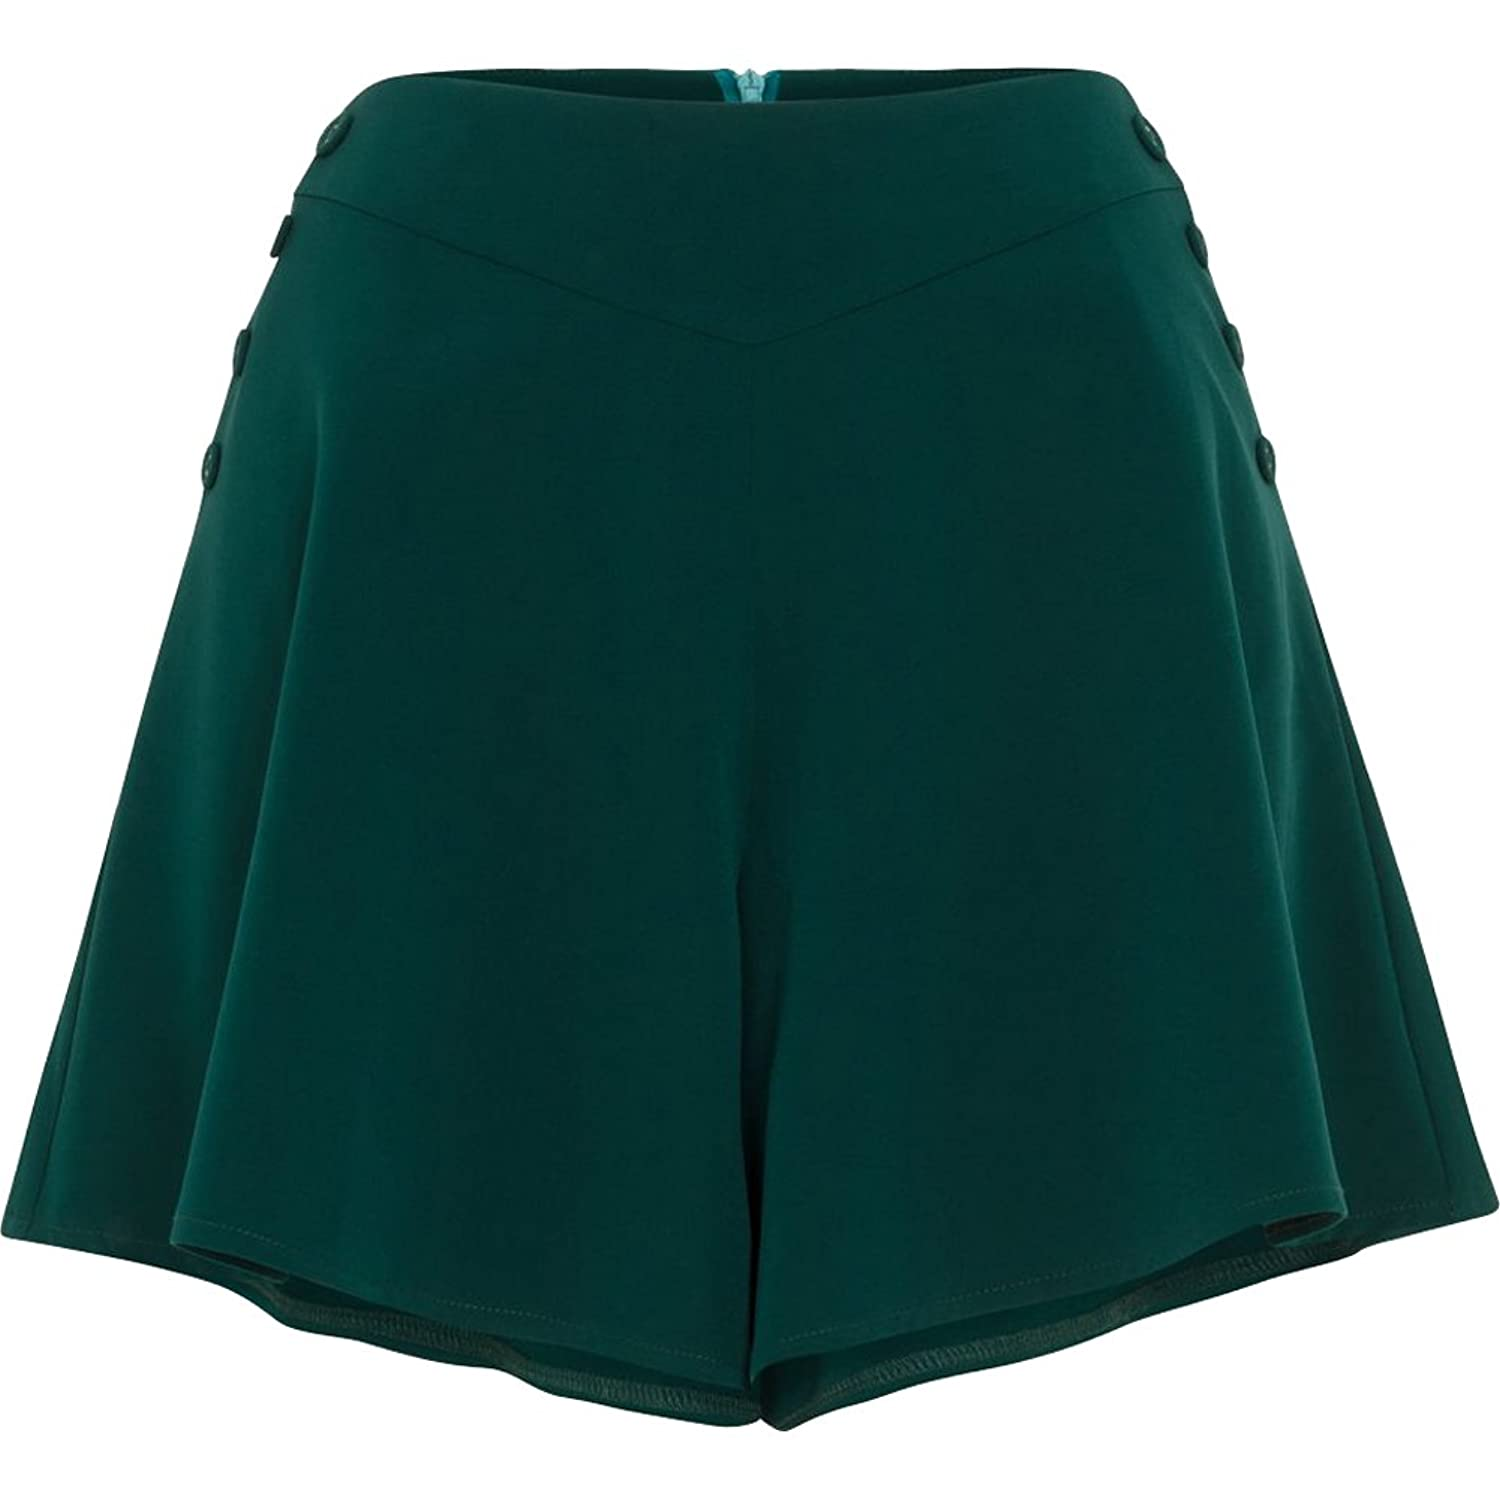 Vintage High Waisted Shorts, Sailor Shorts, Retro Shorts Womens Voodoo Vixen MIRA Flare Shorts Green $42.99 AT vintagedancer.com